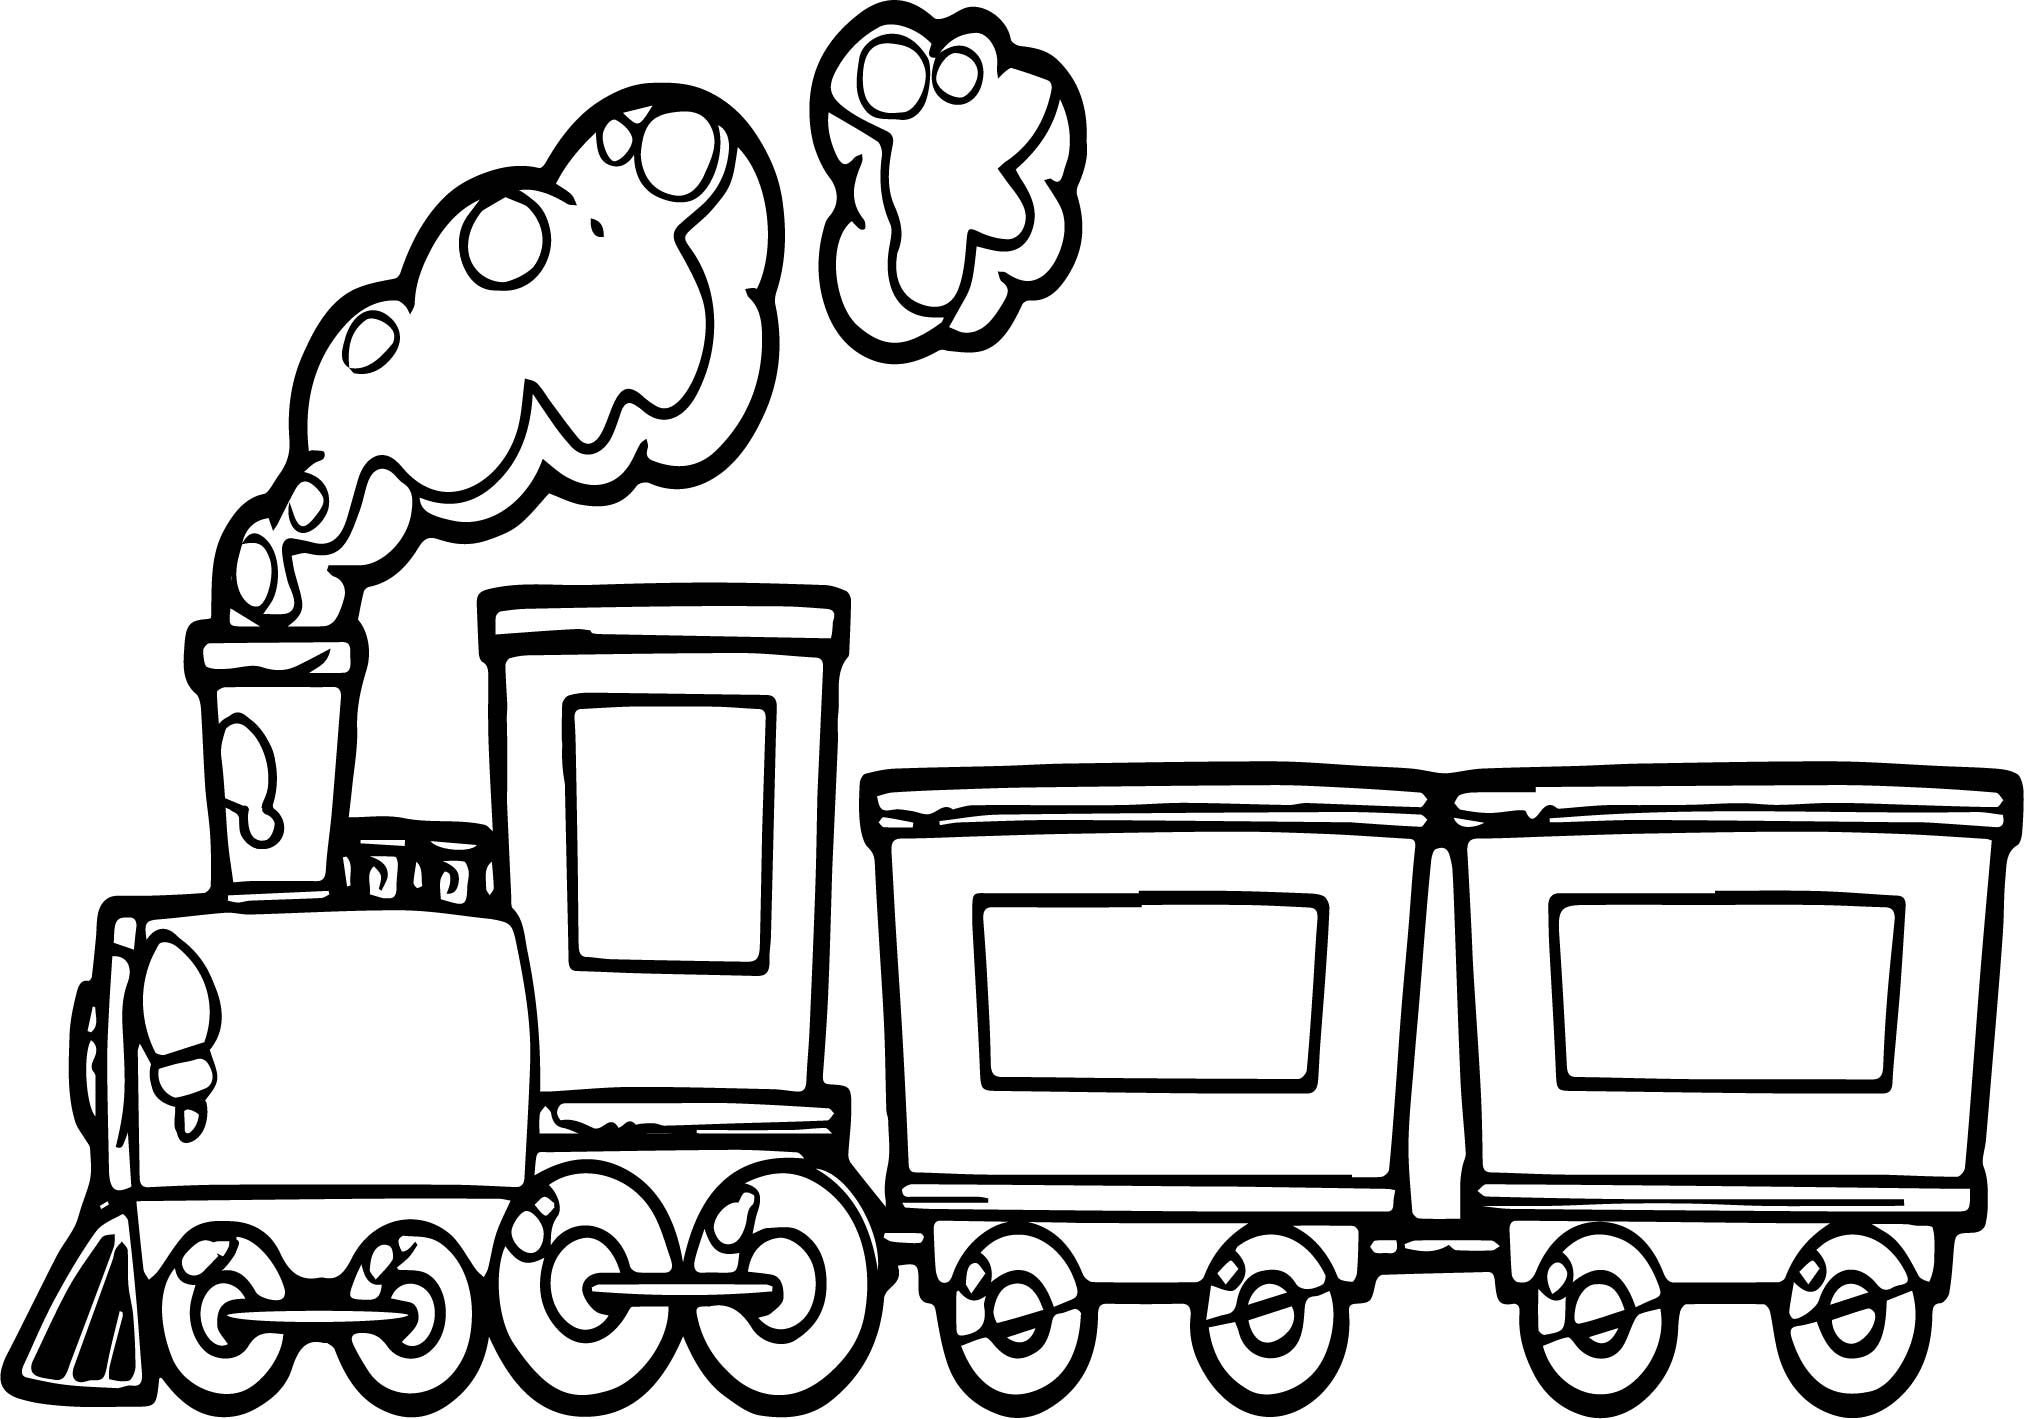 Funny Cartoon Train Coloring Page Train Coloring Pages Train Cartoon Train Drawing